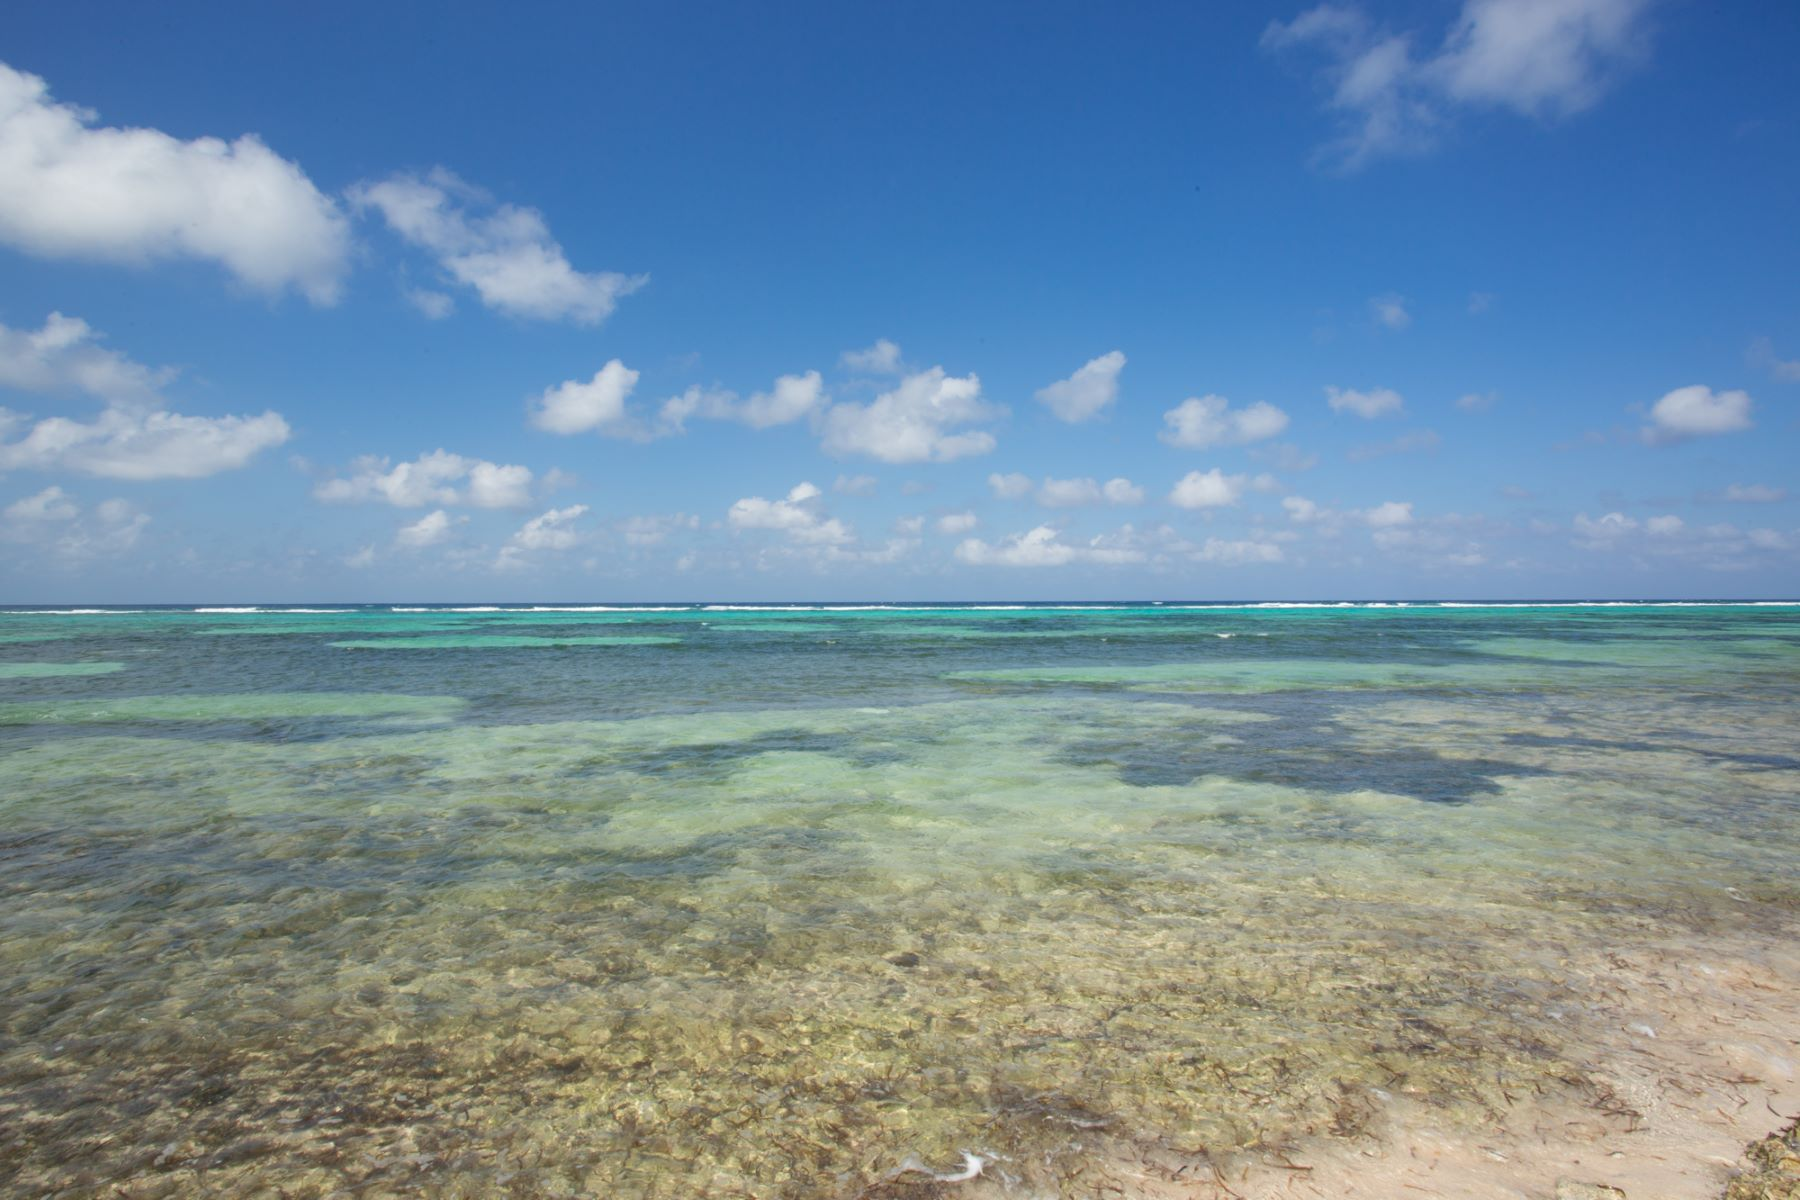 Land for Sale at Ocean front Land, Queen's Highway East End, Cayman Islands